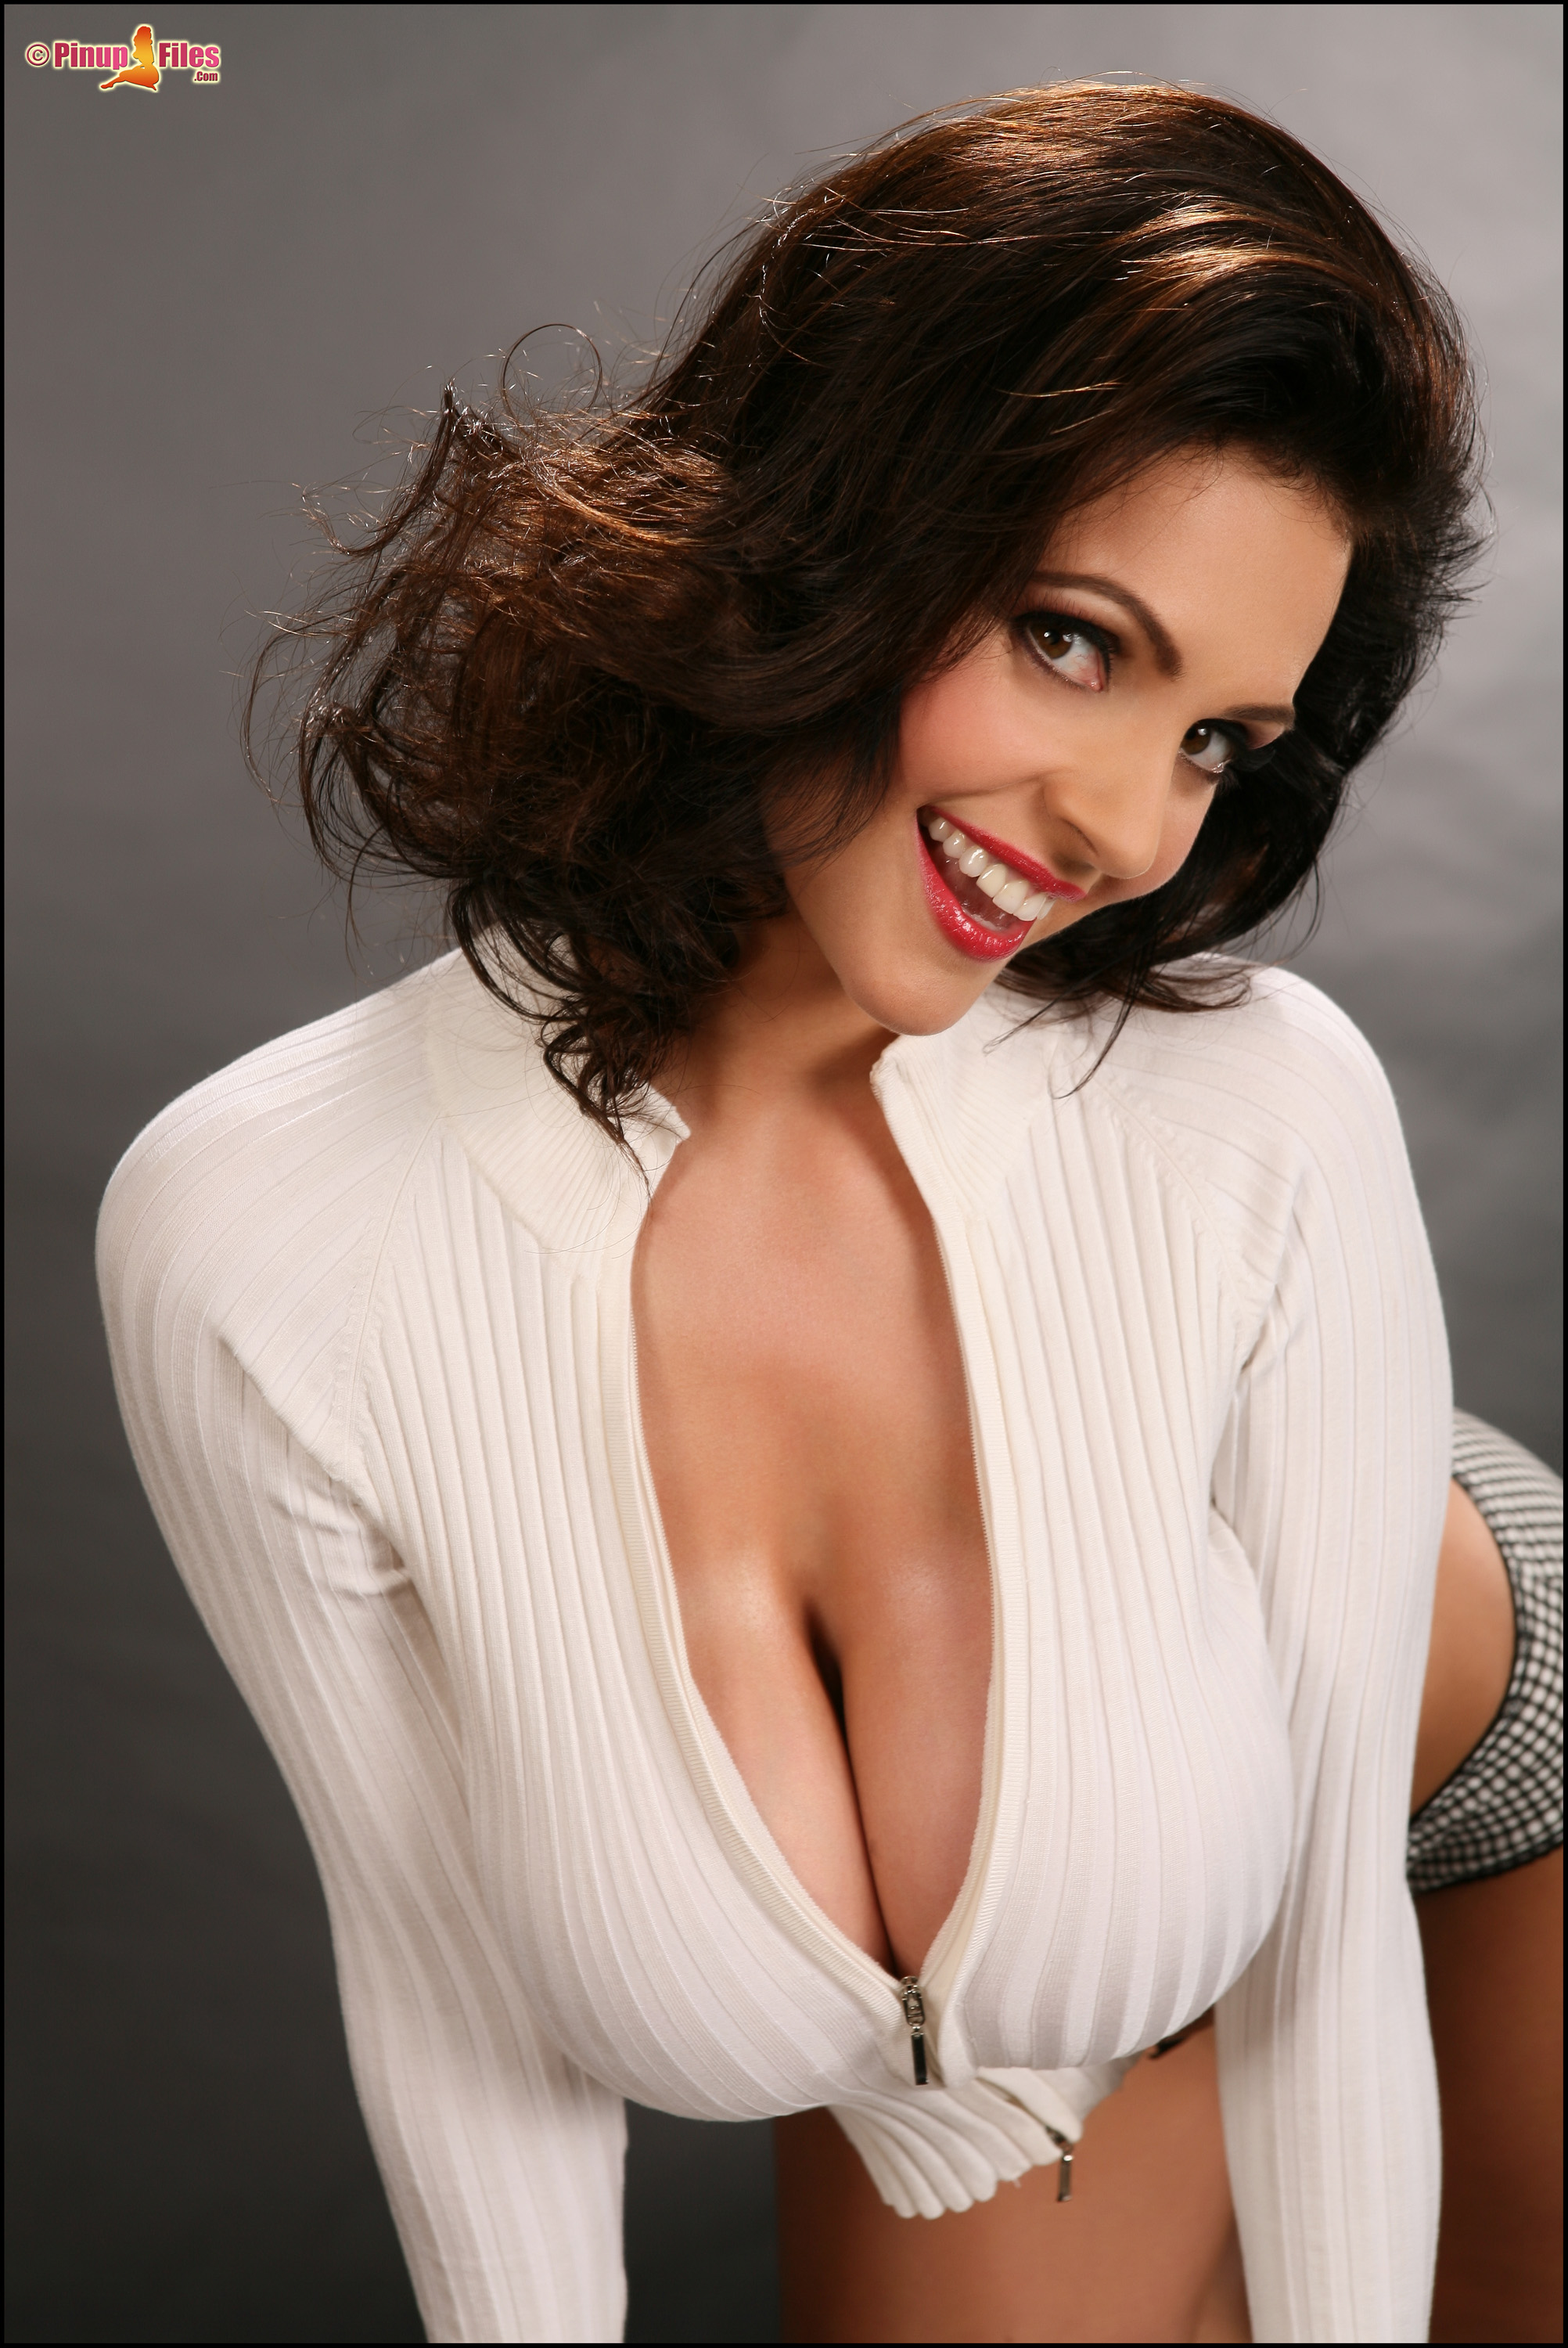 Denise Milani Huge Boobs in a White Cardigan - Feel the ...